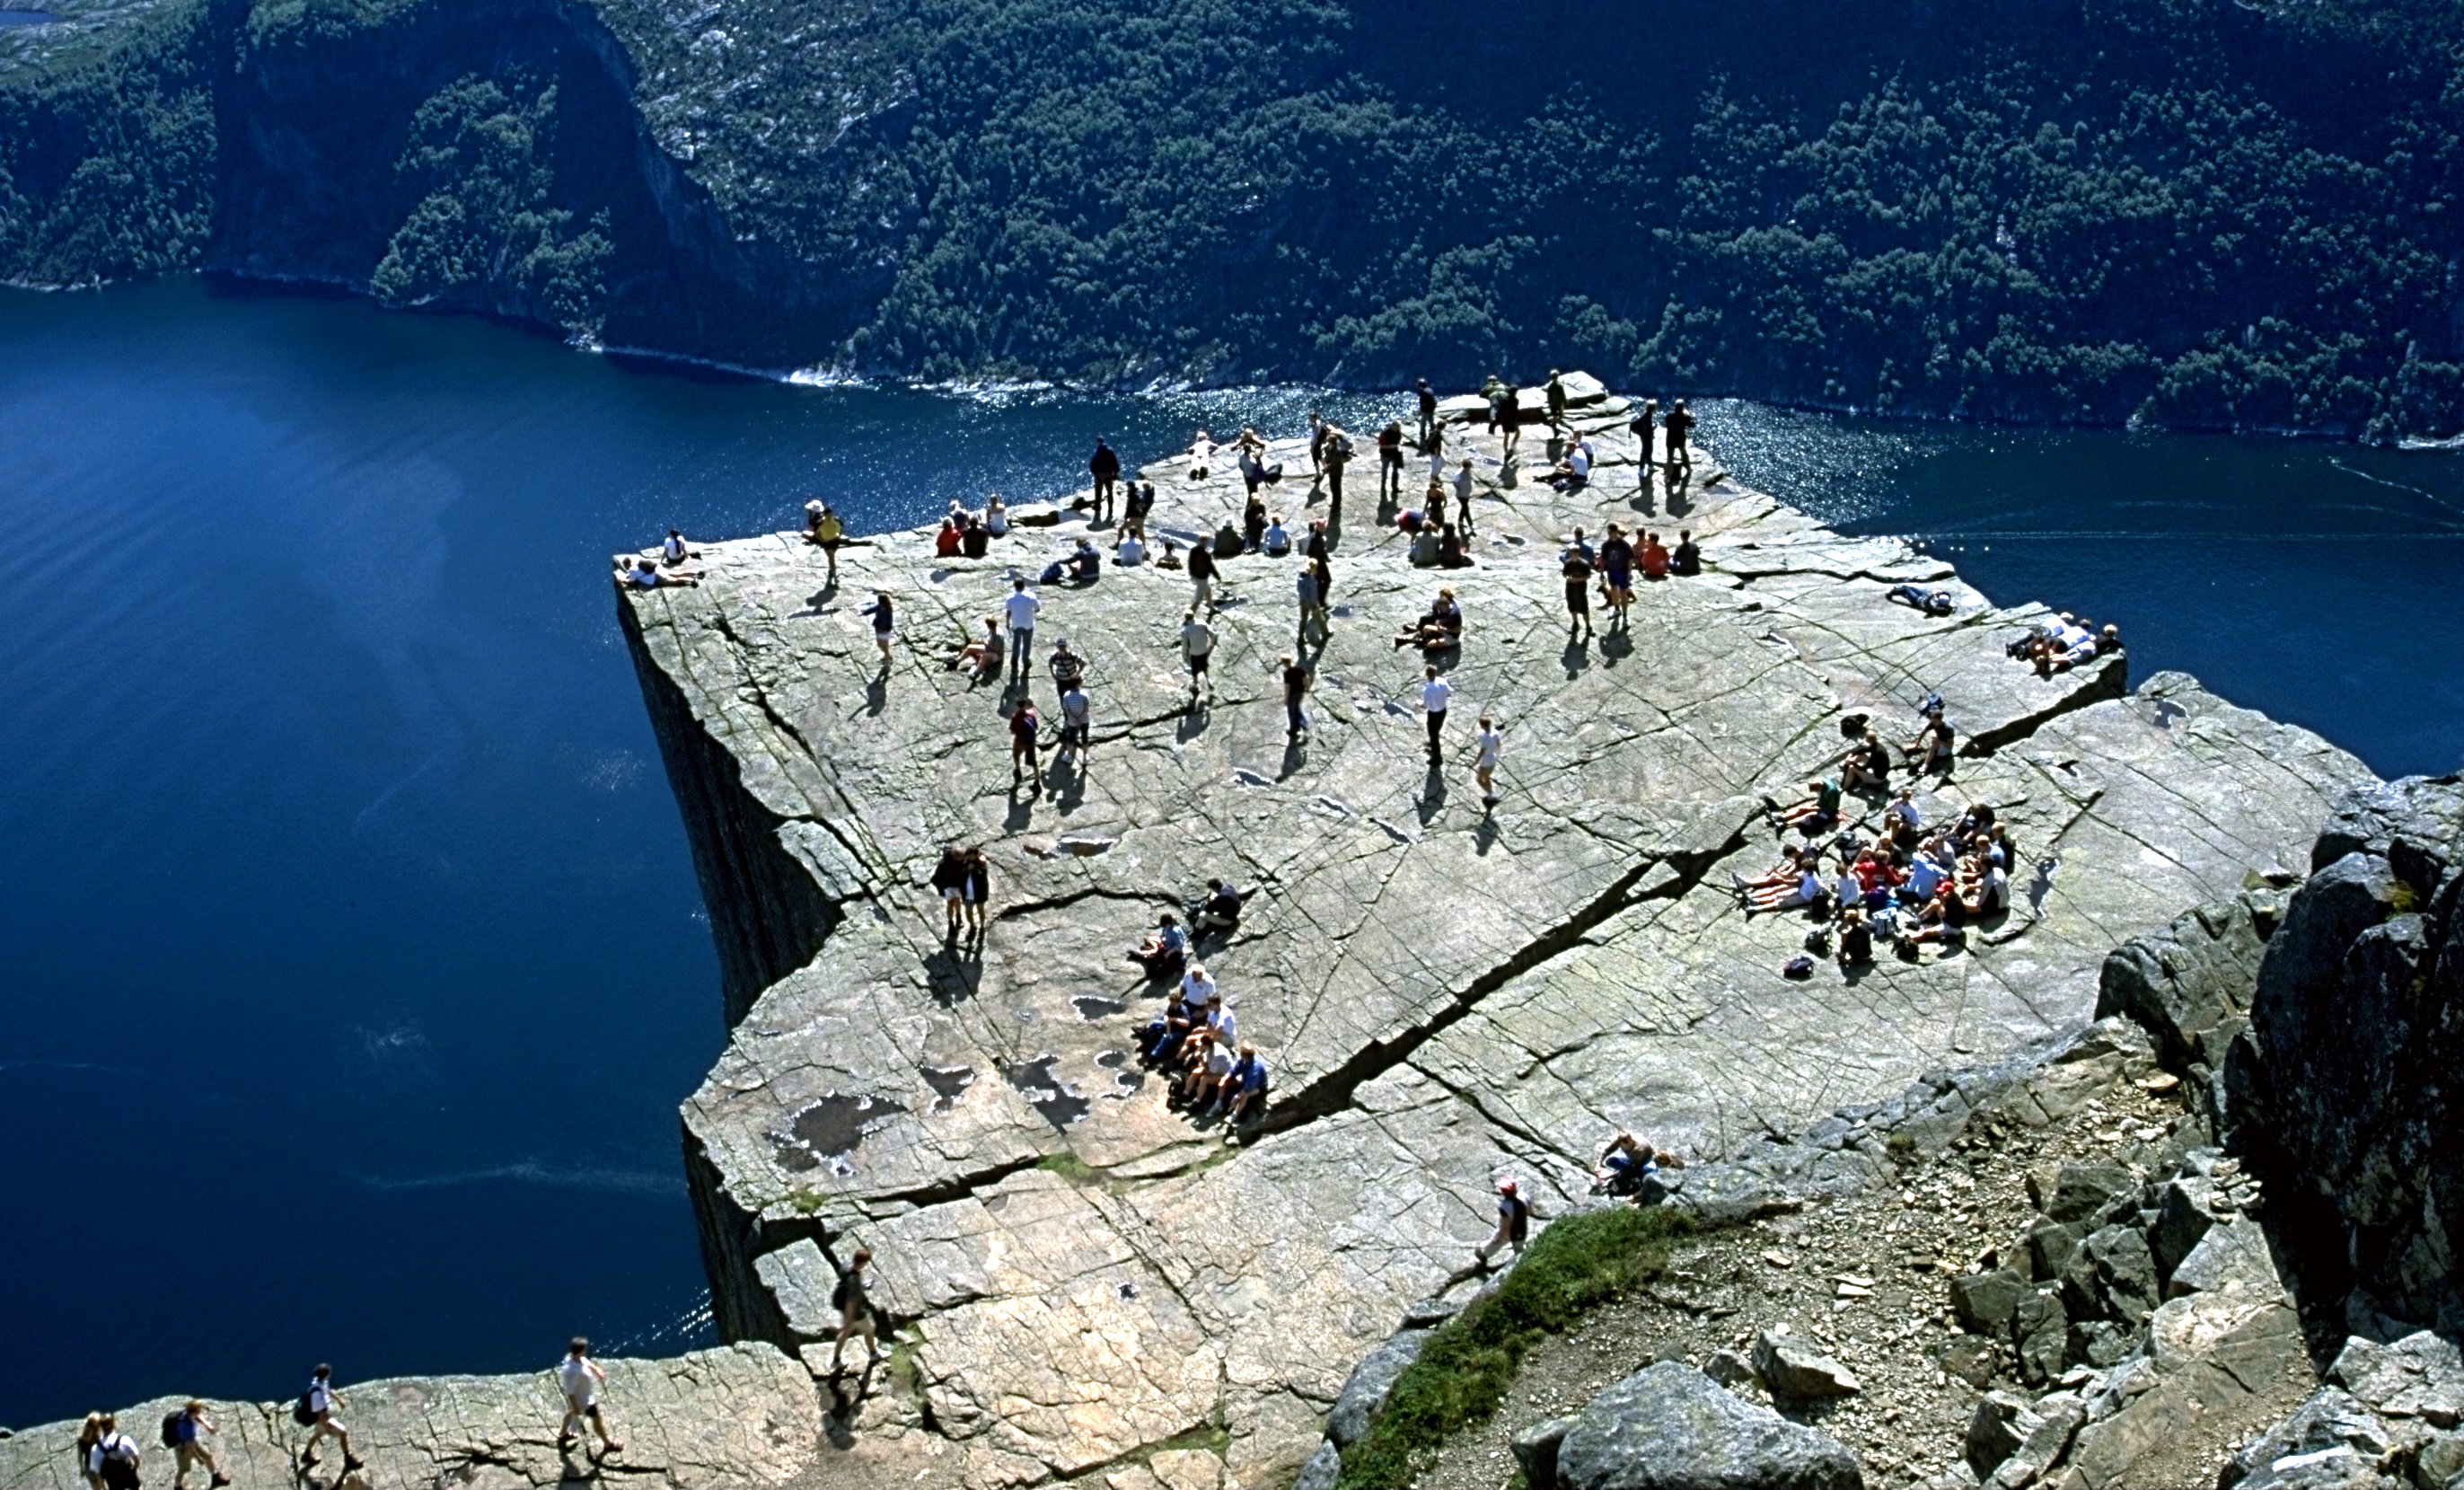 yosemite map google with File Preikestolen on File marmotaflaviventris 3268 further Hiking Clouds Rest together with 361836151283008865 besides 13952671 together with Downtown Merced.